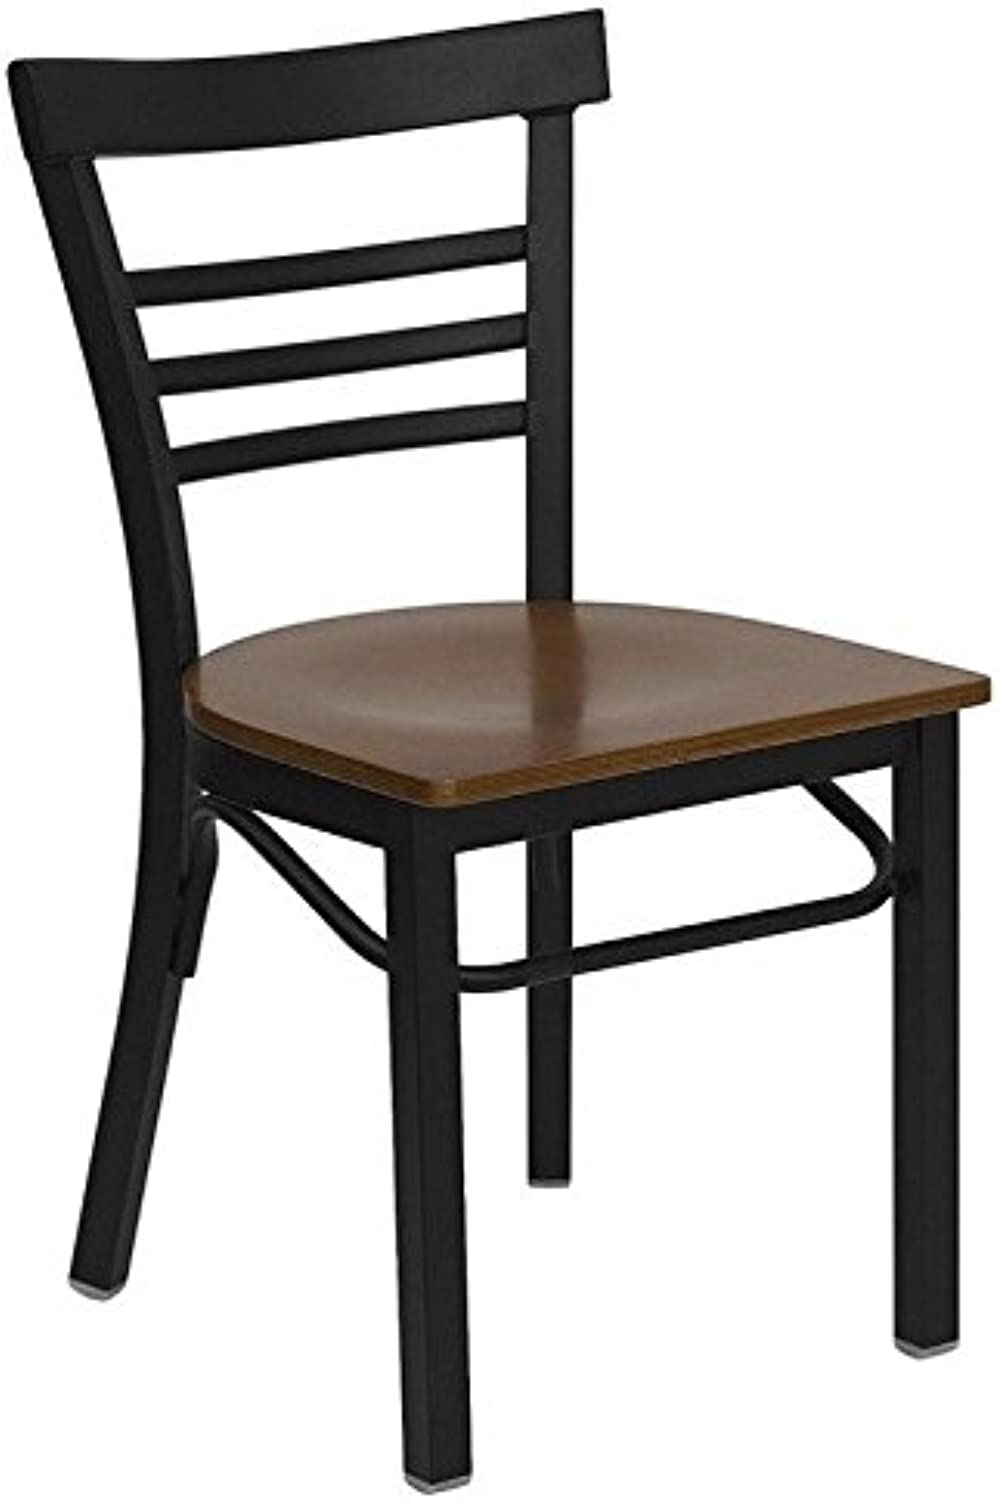 Bowery Hill Black Ladder Back Dining Chair in Cherry